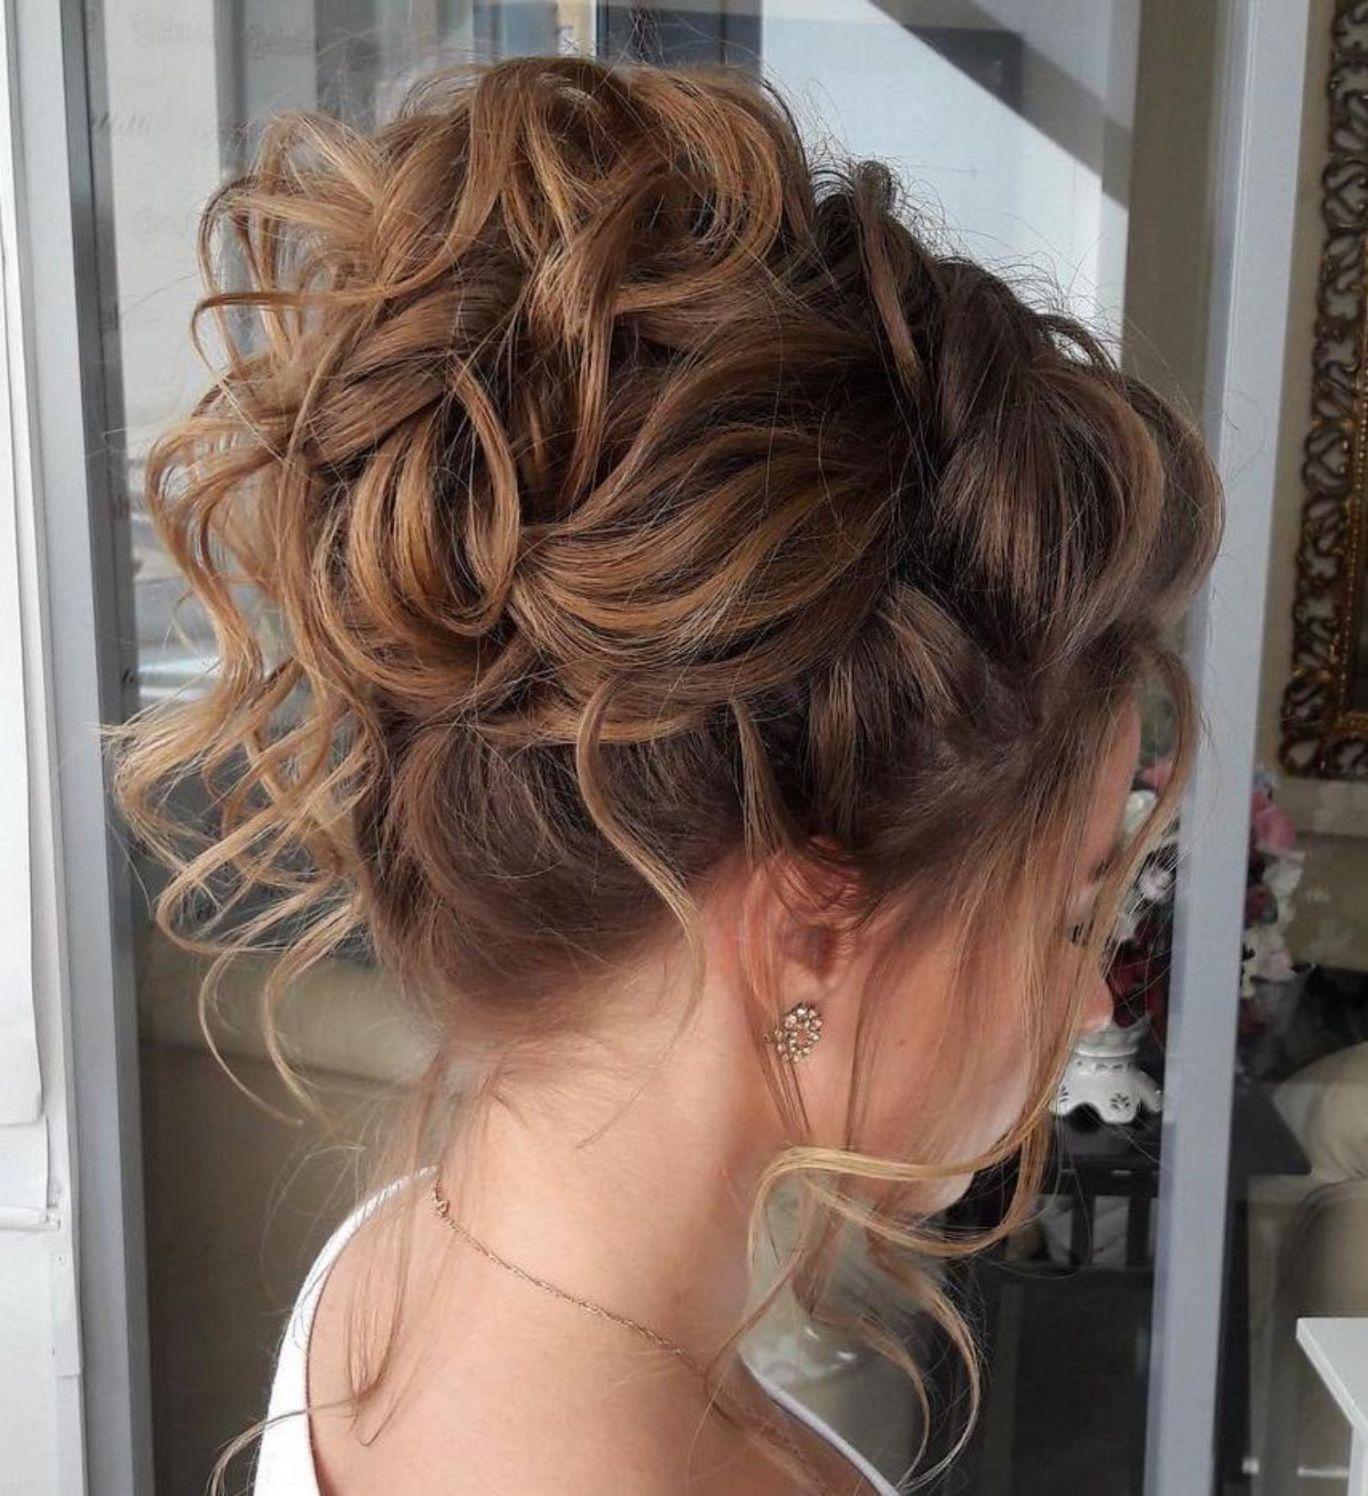 40 creative updos for curly hair in 2019 | short hair